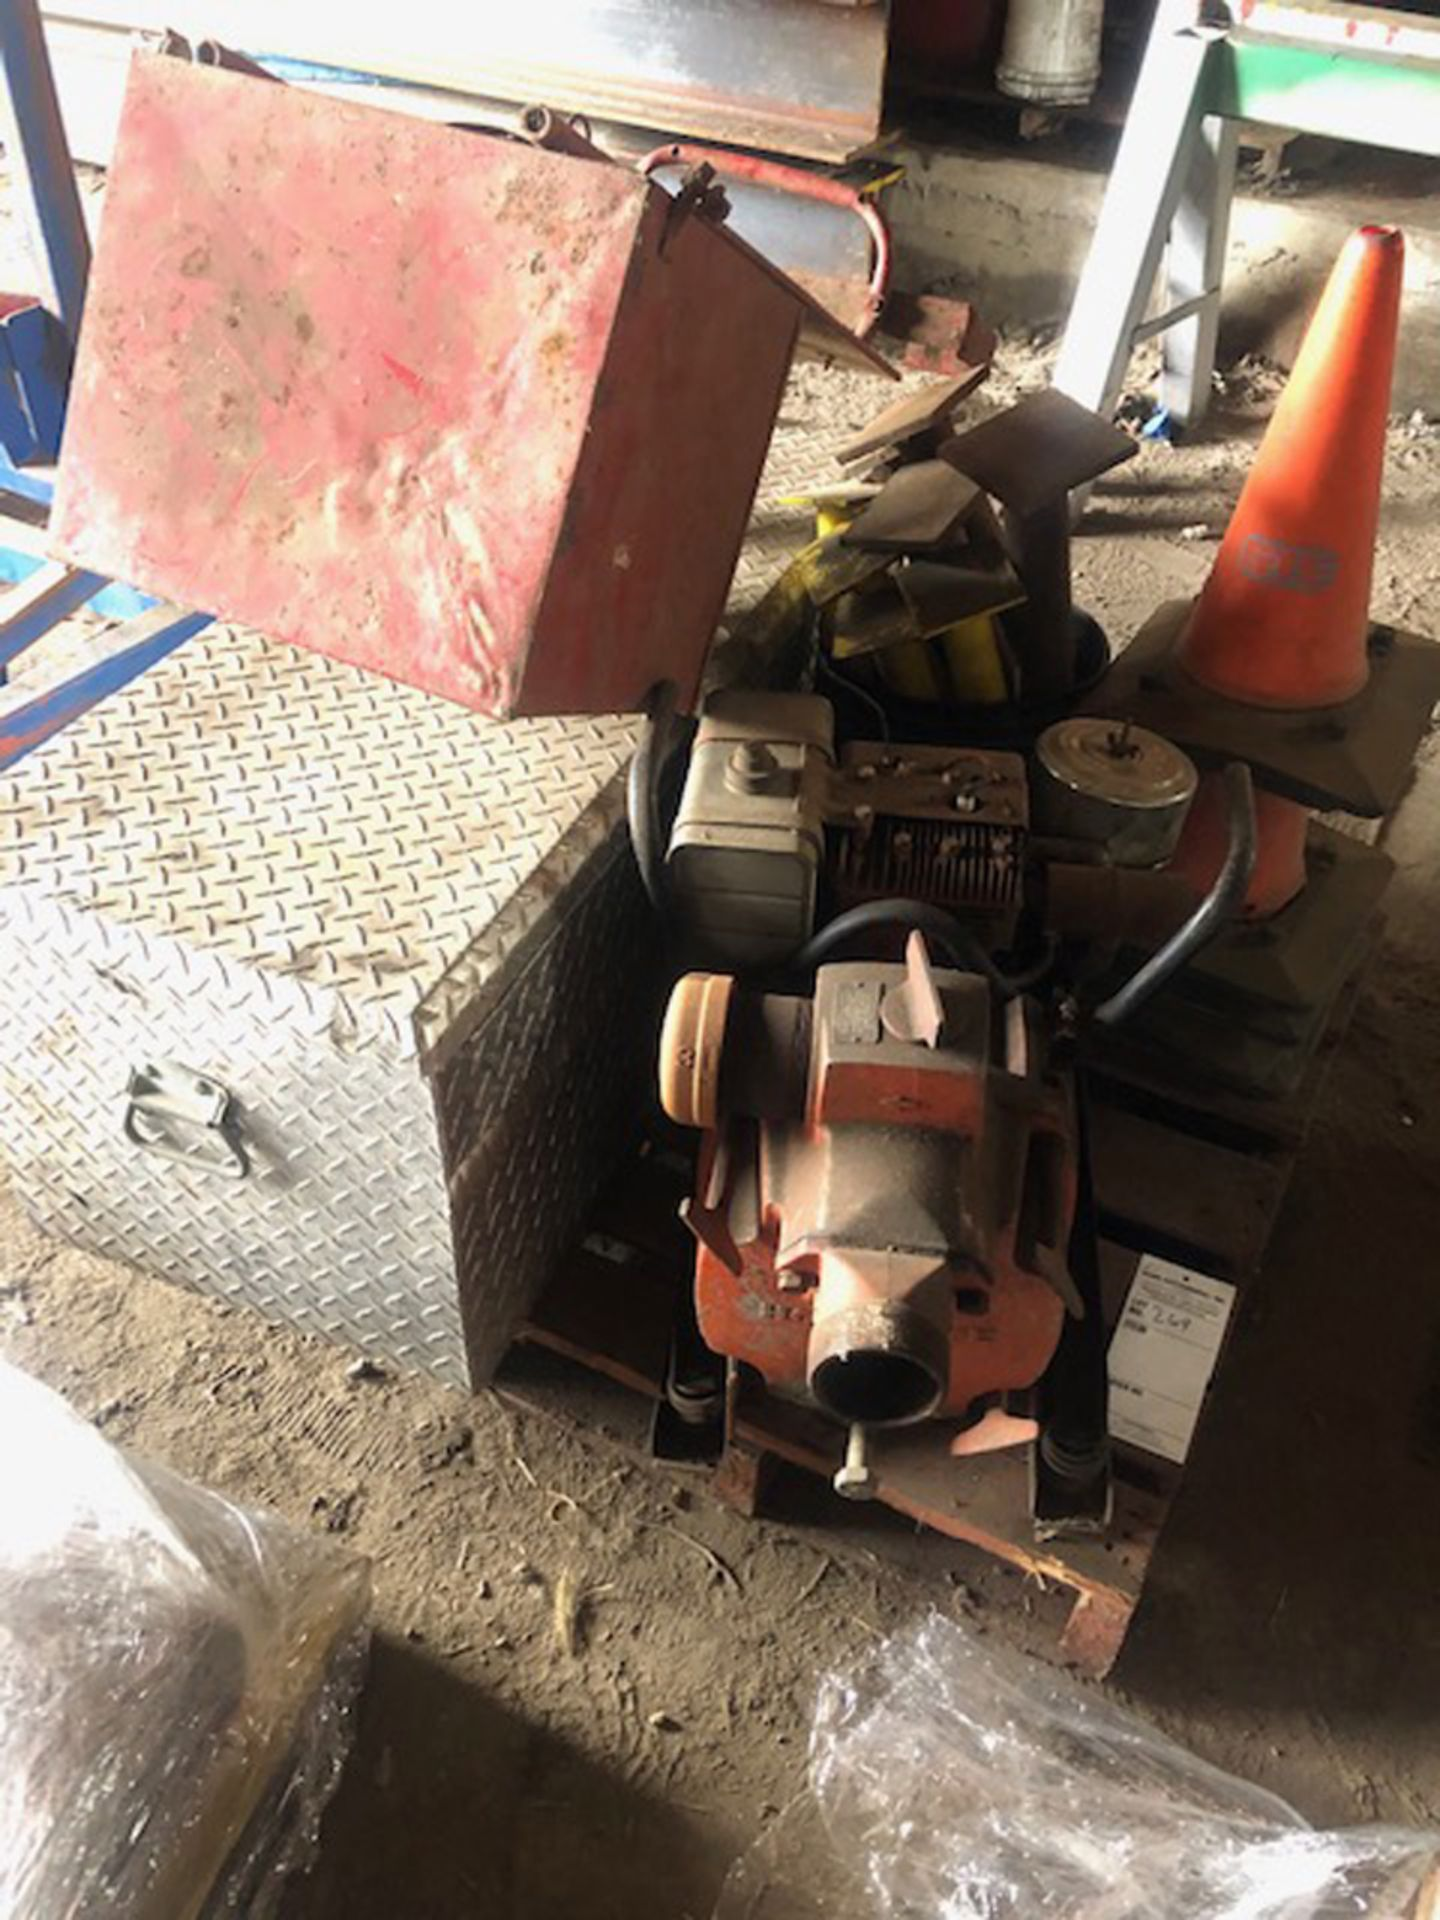 Lot 269 - skid of misc. to include a gas powered trash pump, toolbox, fertilizer spreader